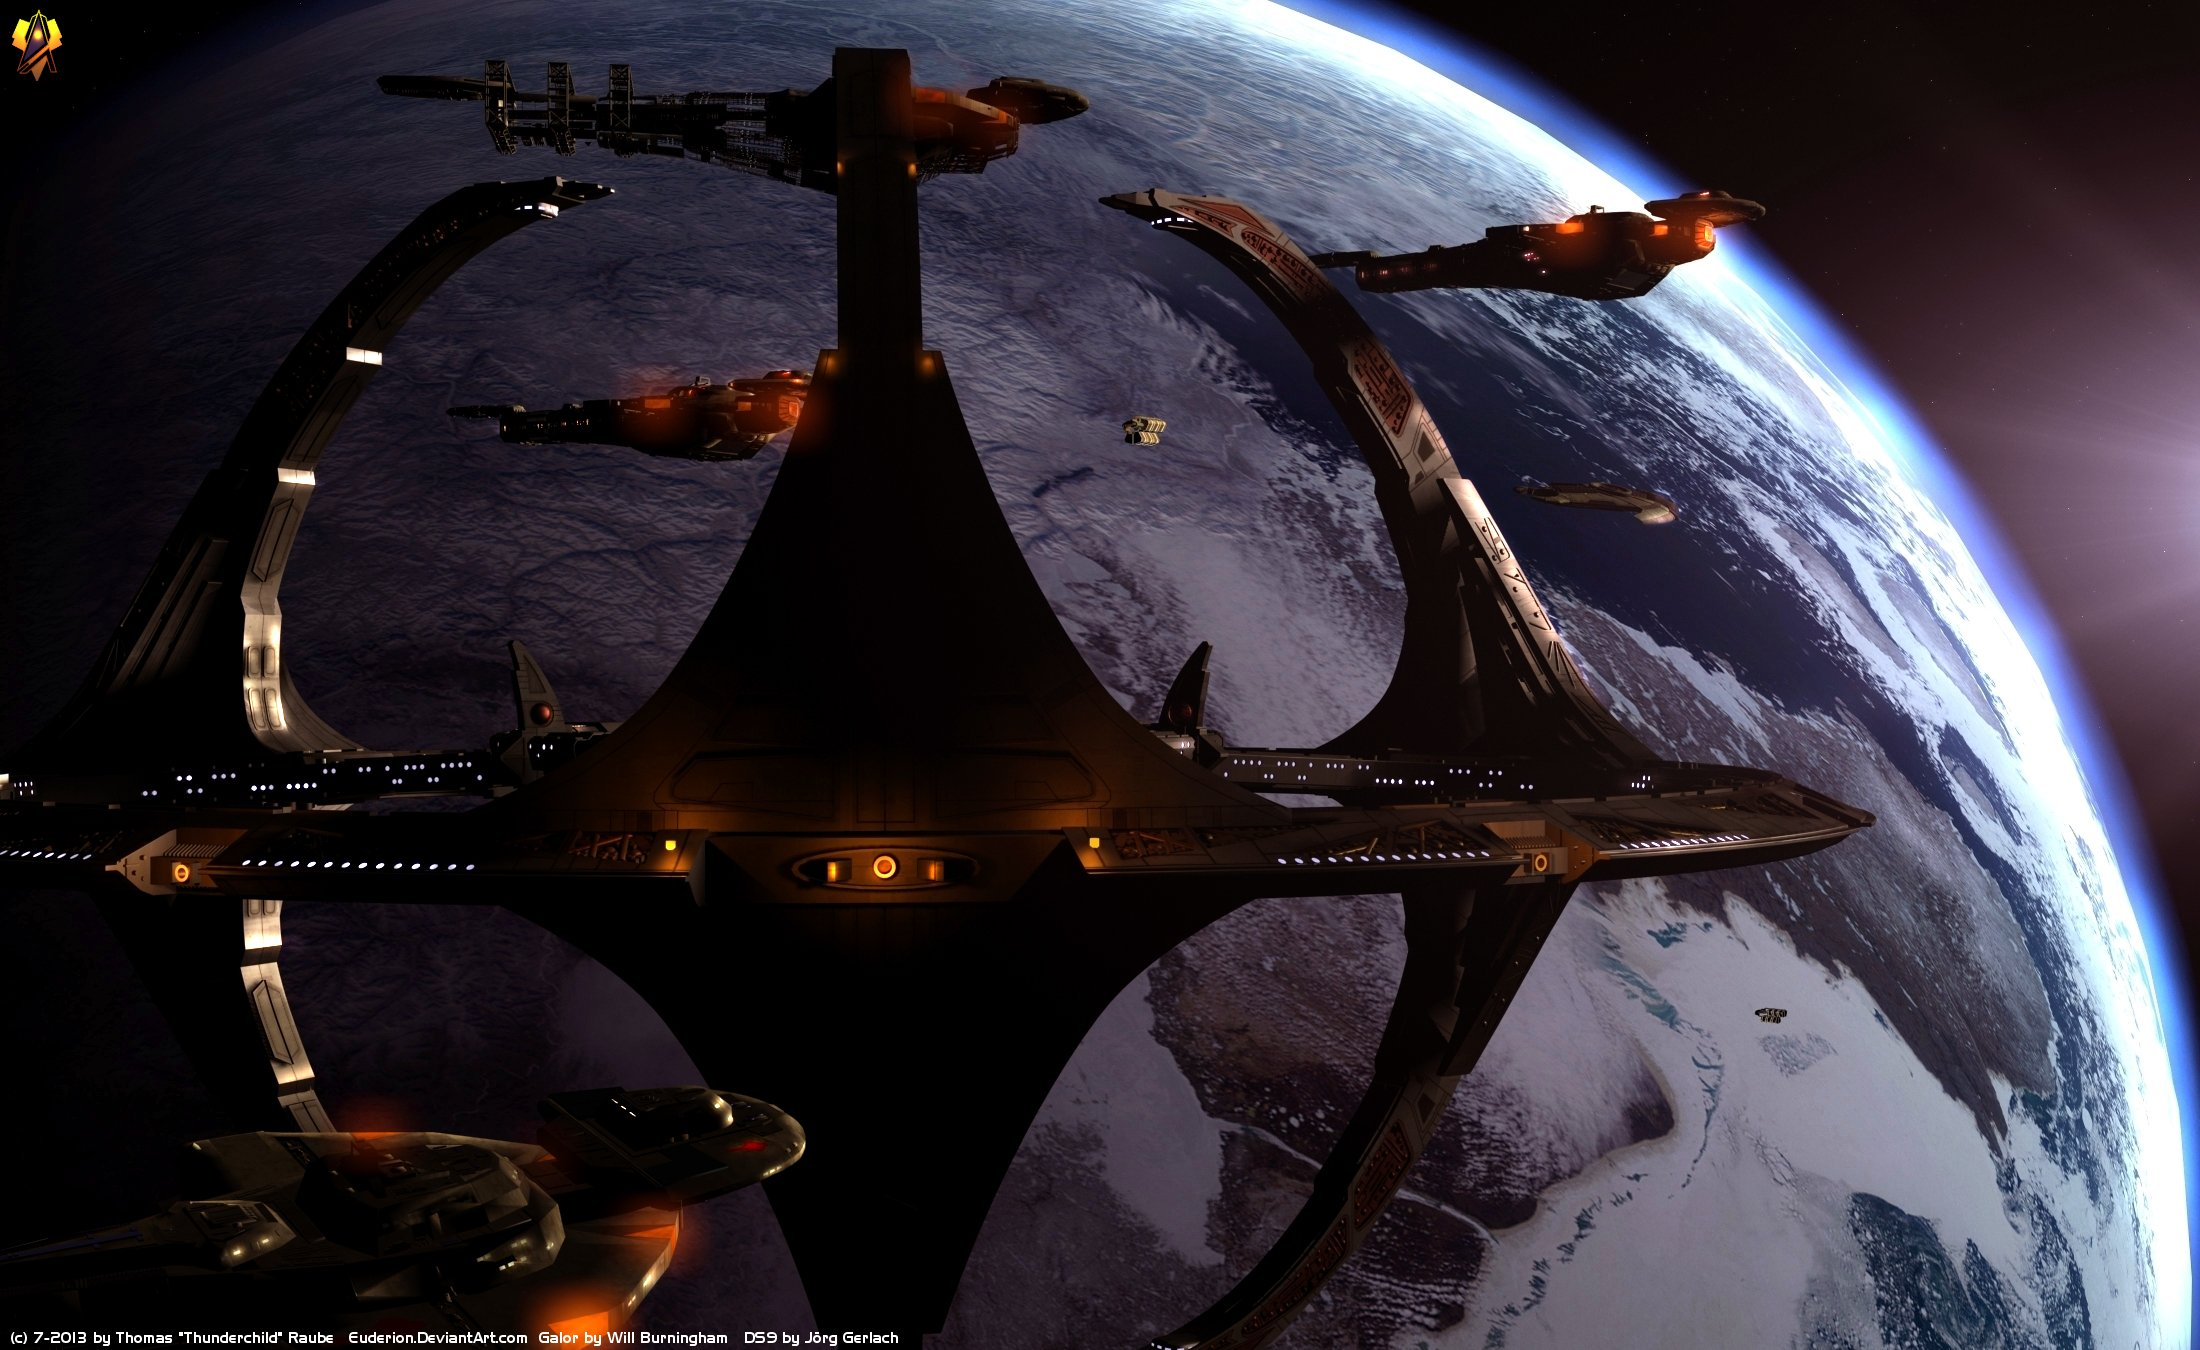 cardassian space station - photo #27